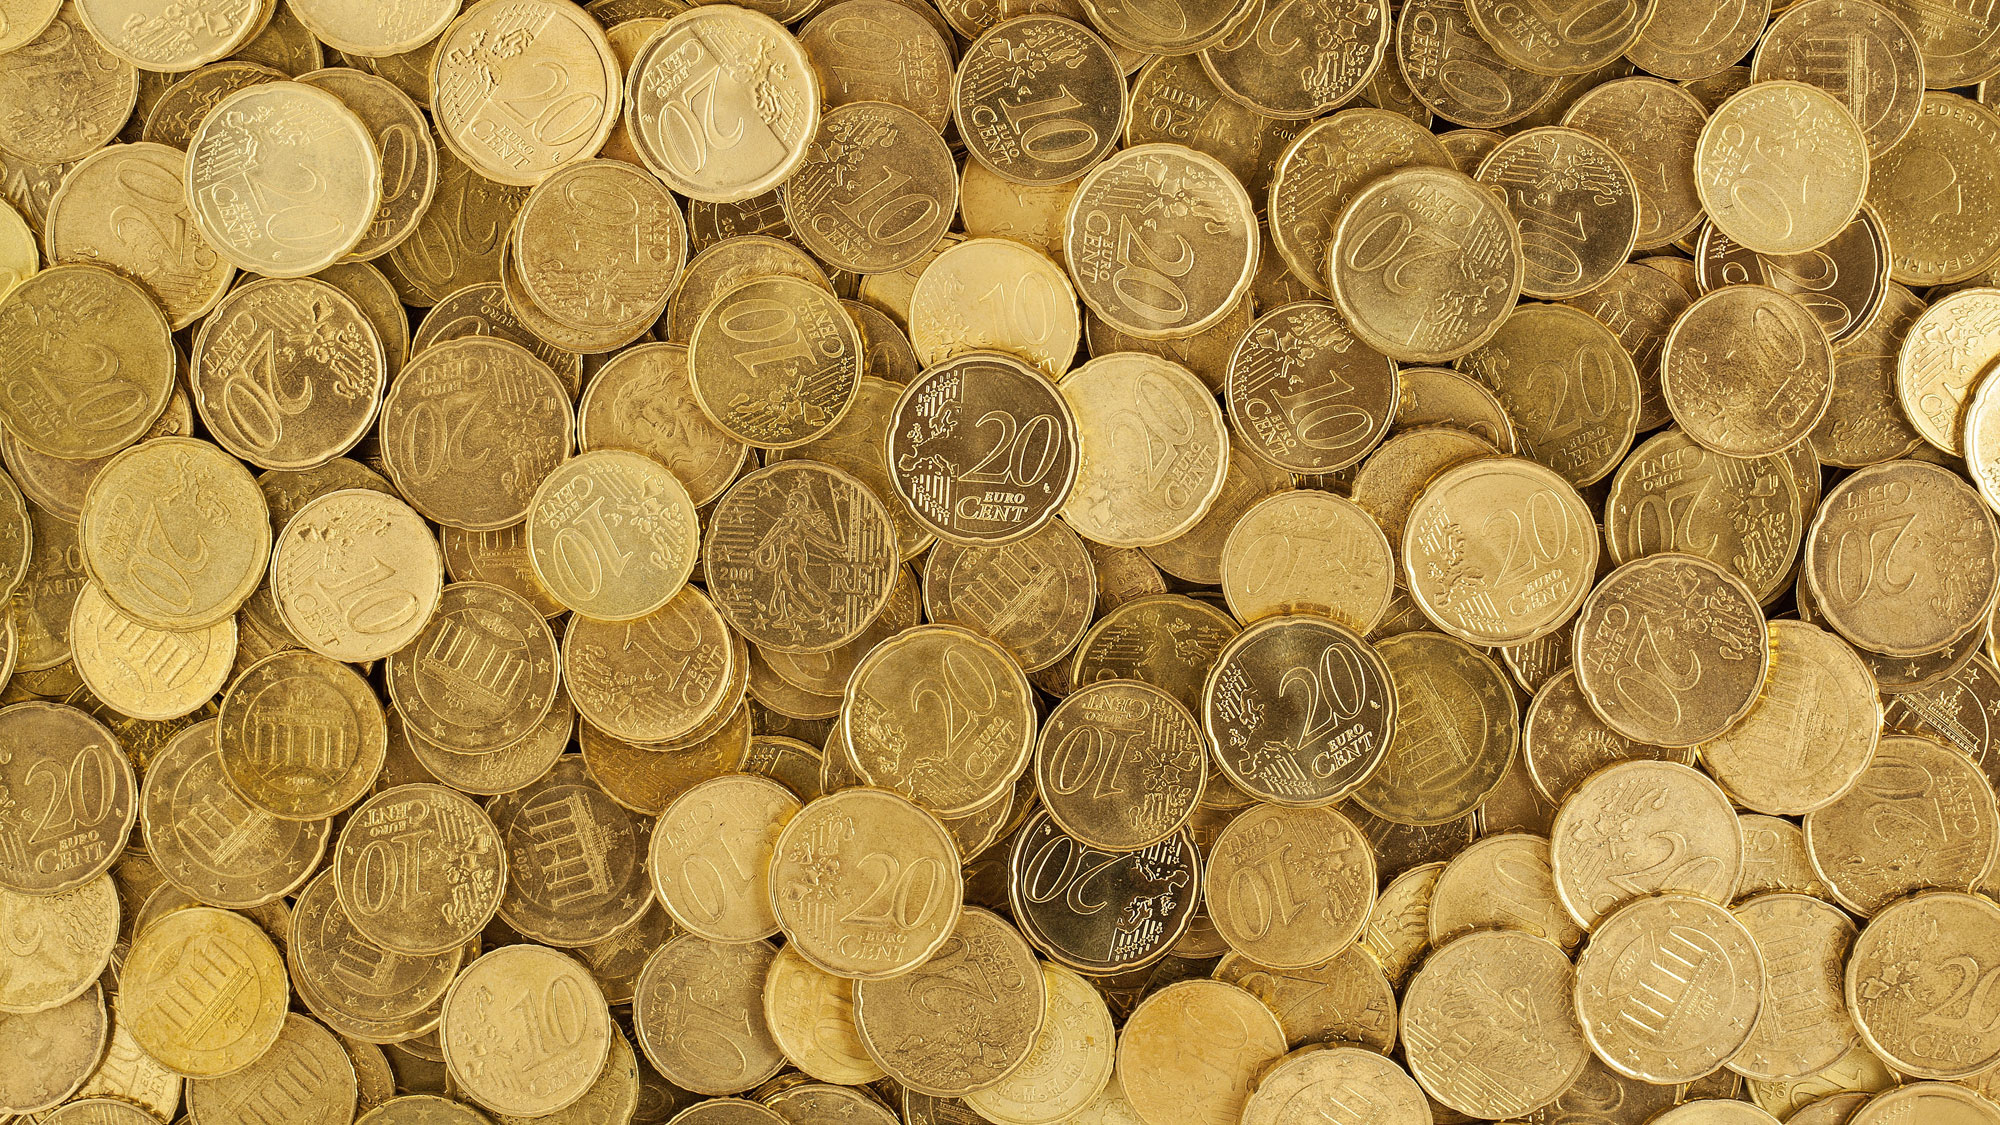 Pile of Gold Round Coins by pixabay.com